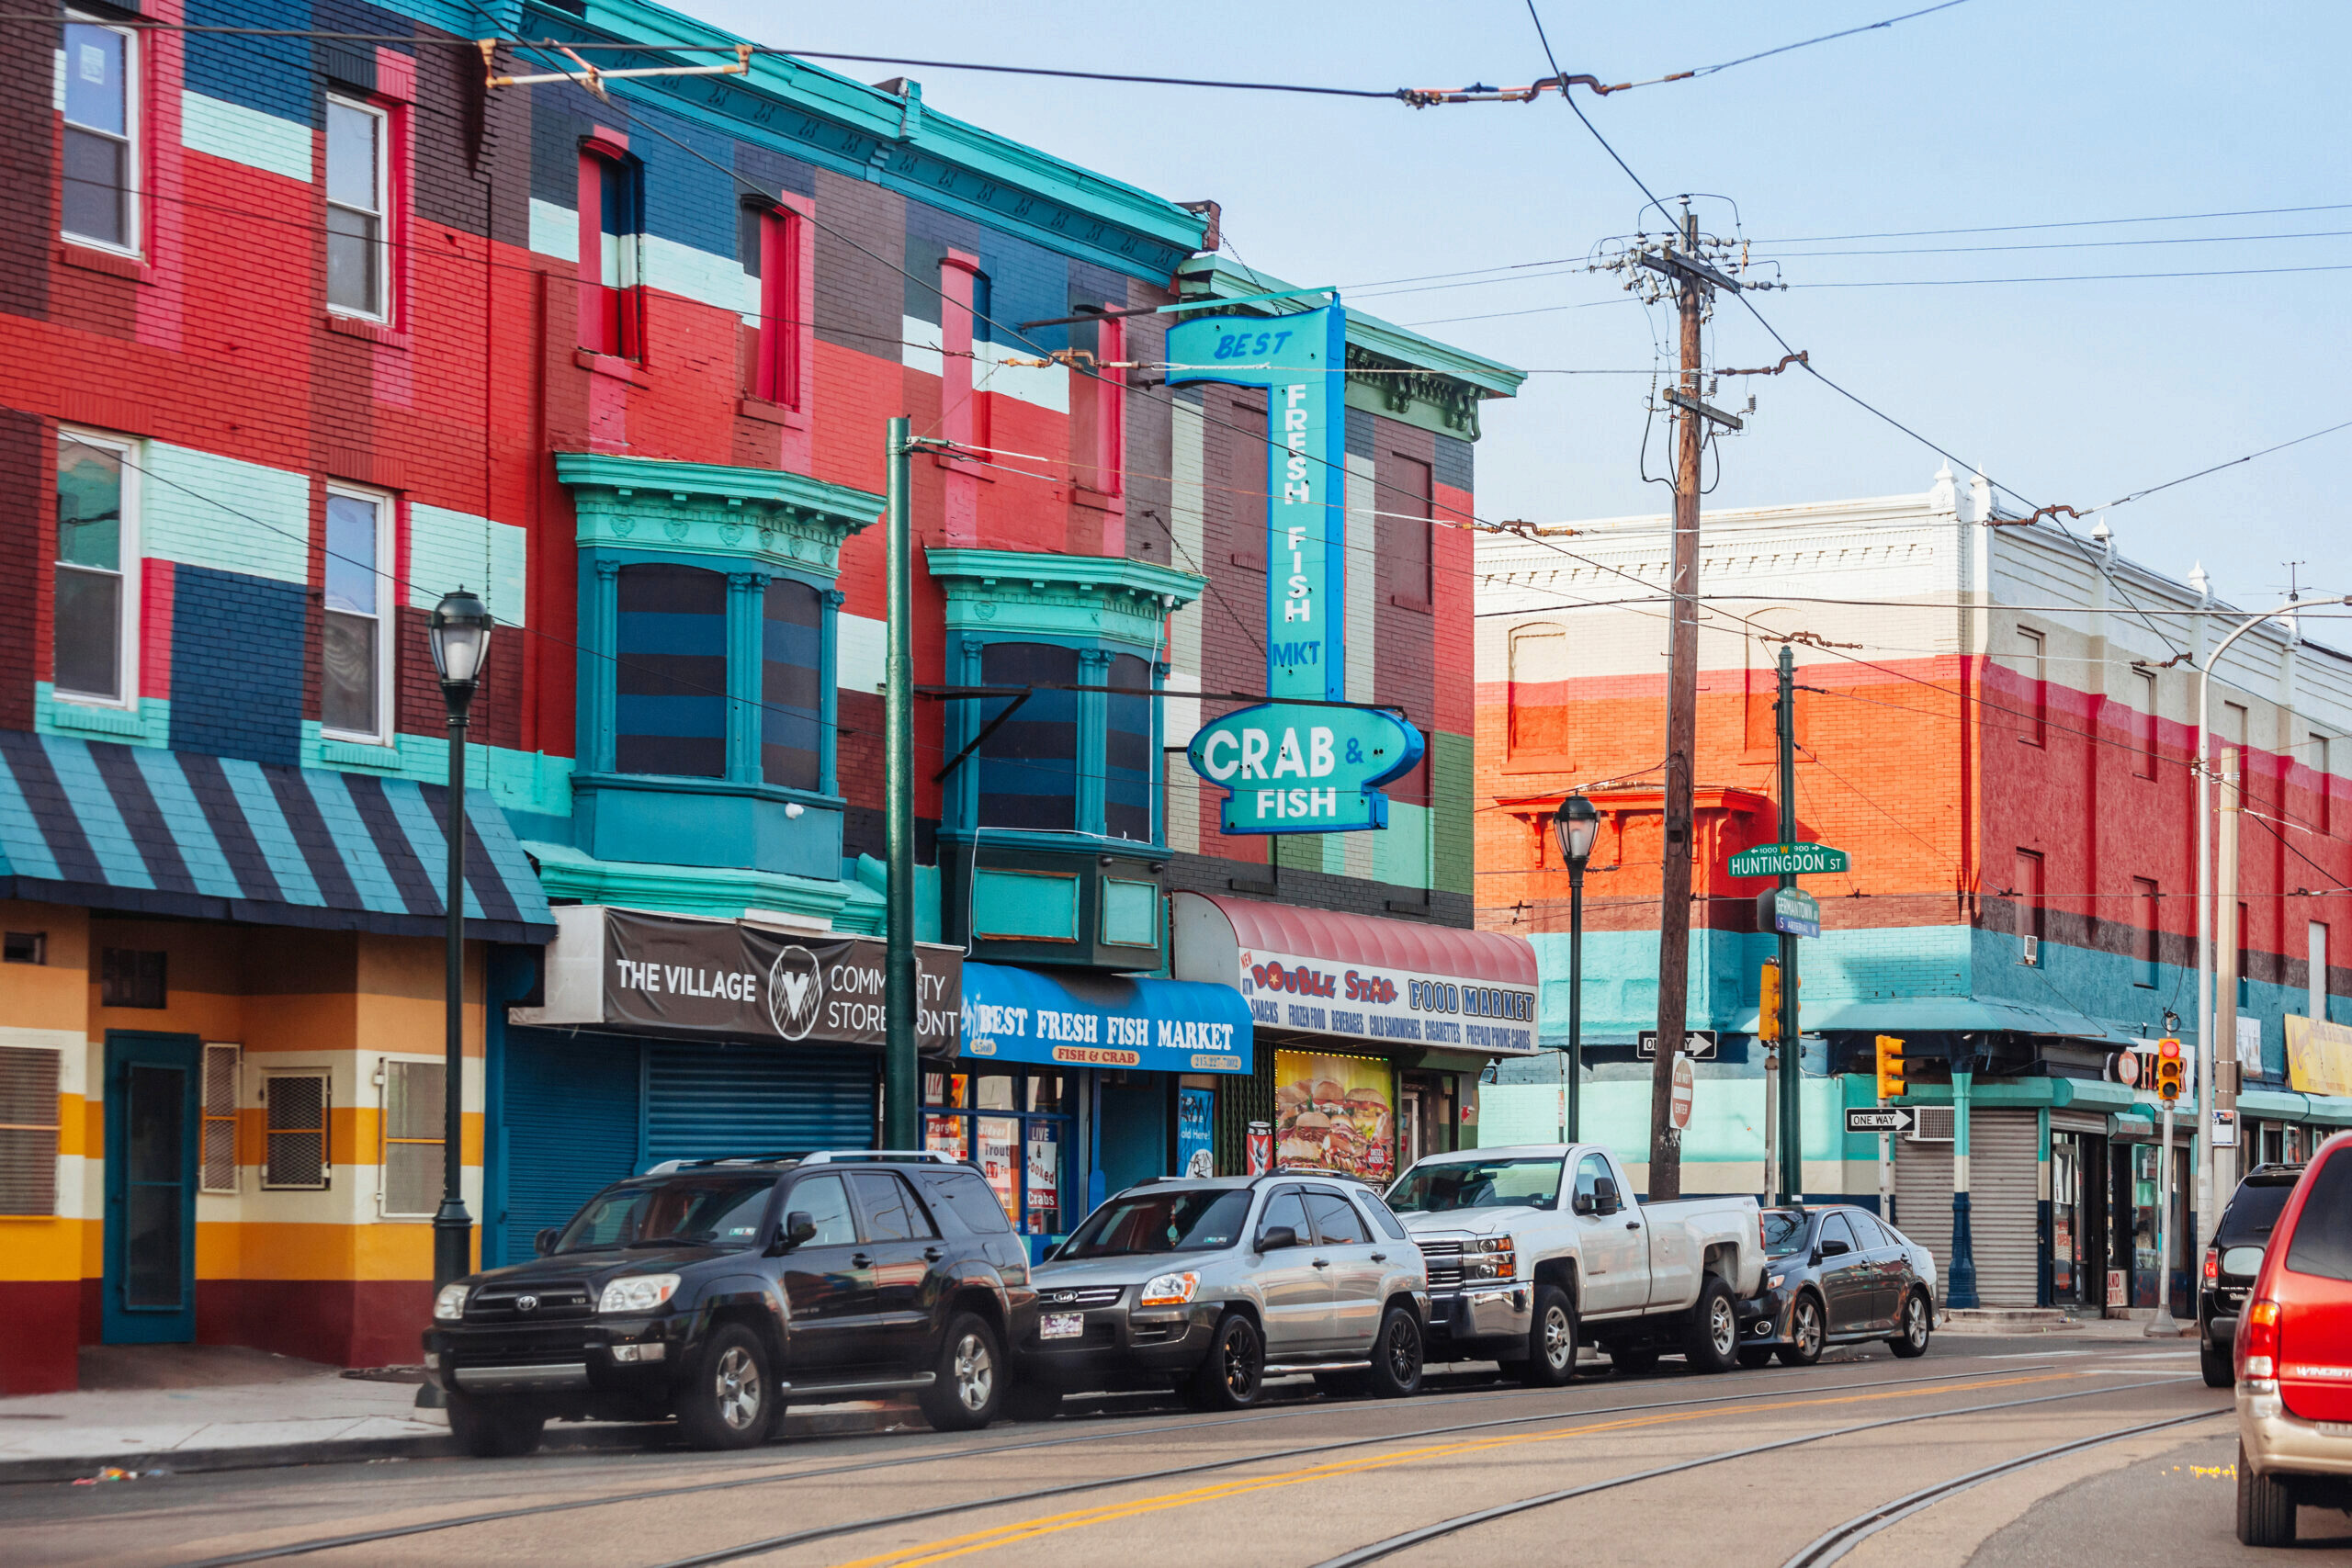 colorful storefronts in the Philadelphia community